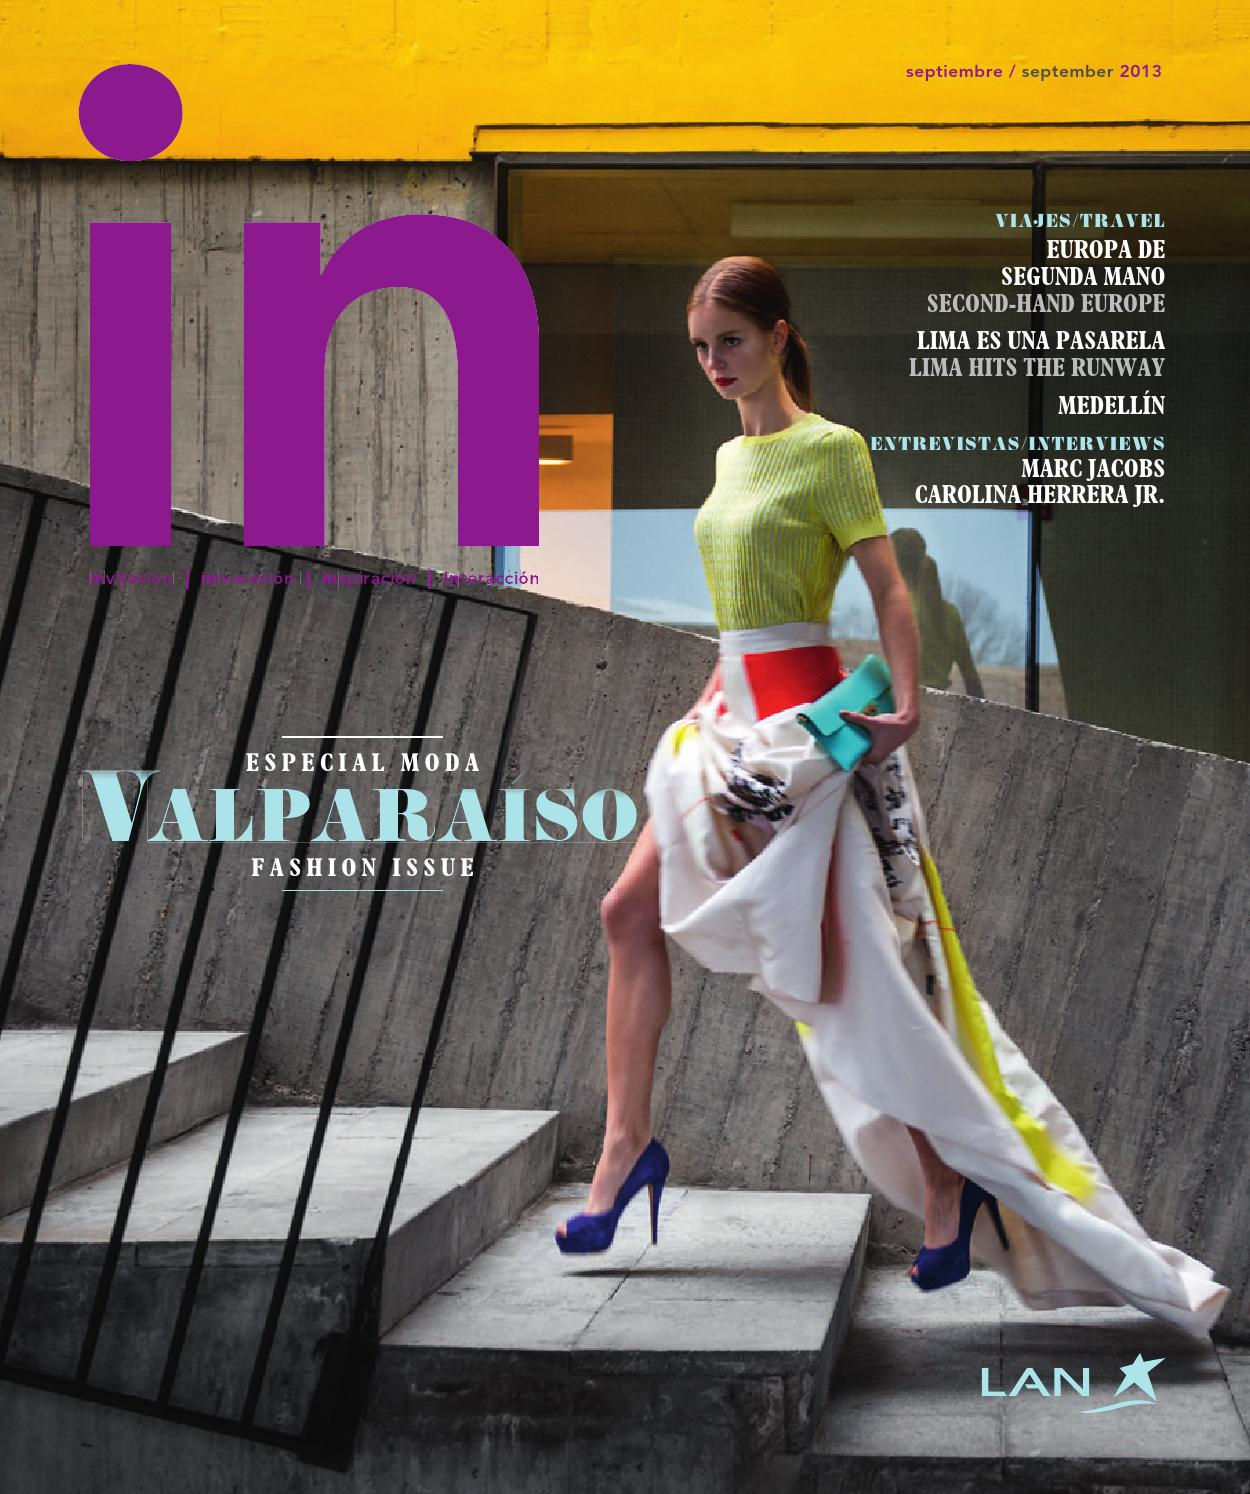 sports shoes 36373 3dc8f In Magazine Septiembre   September 2013 by Spafax - issuu